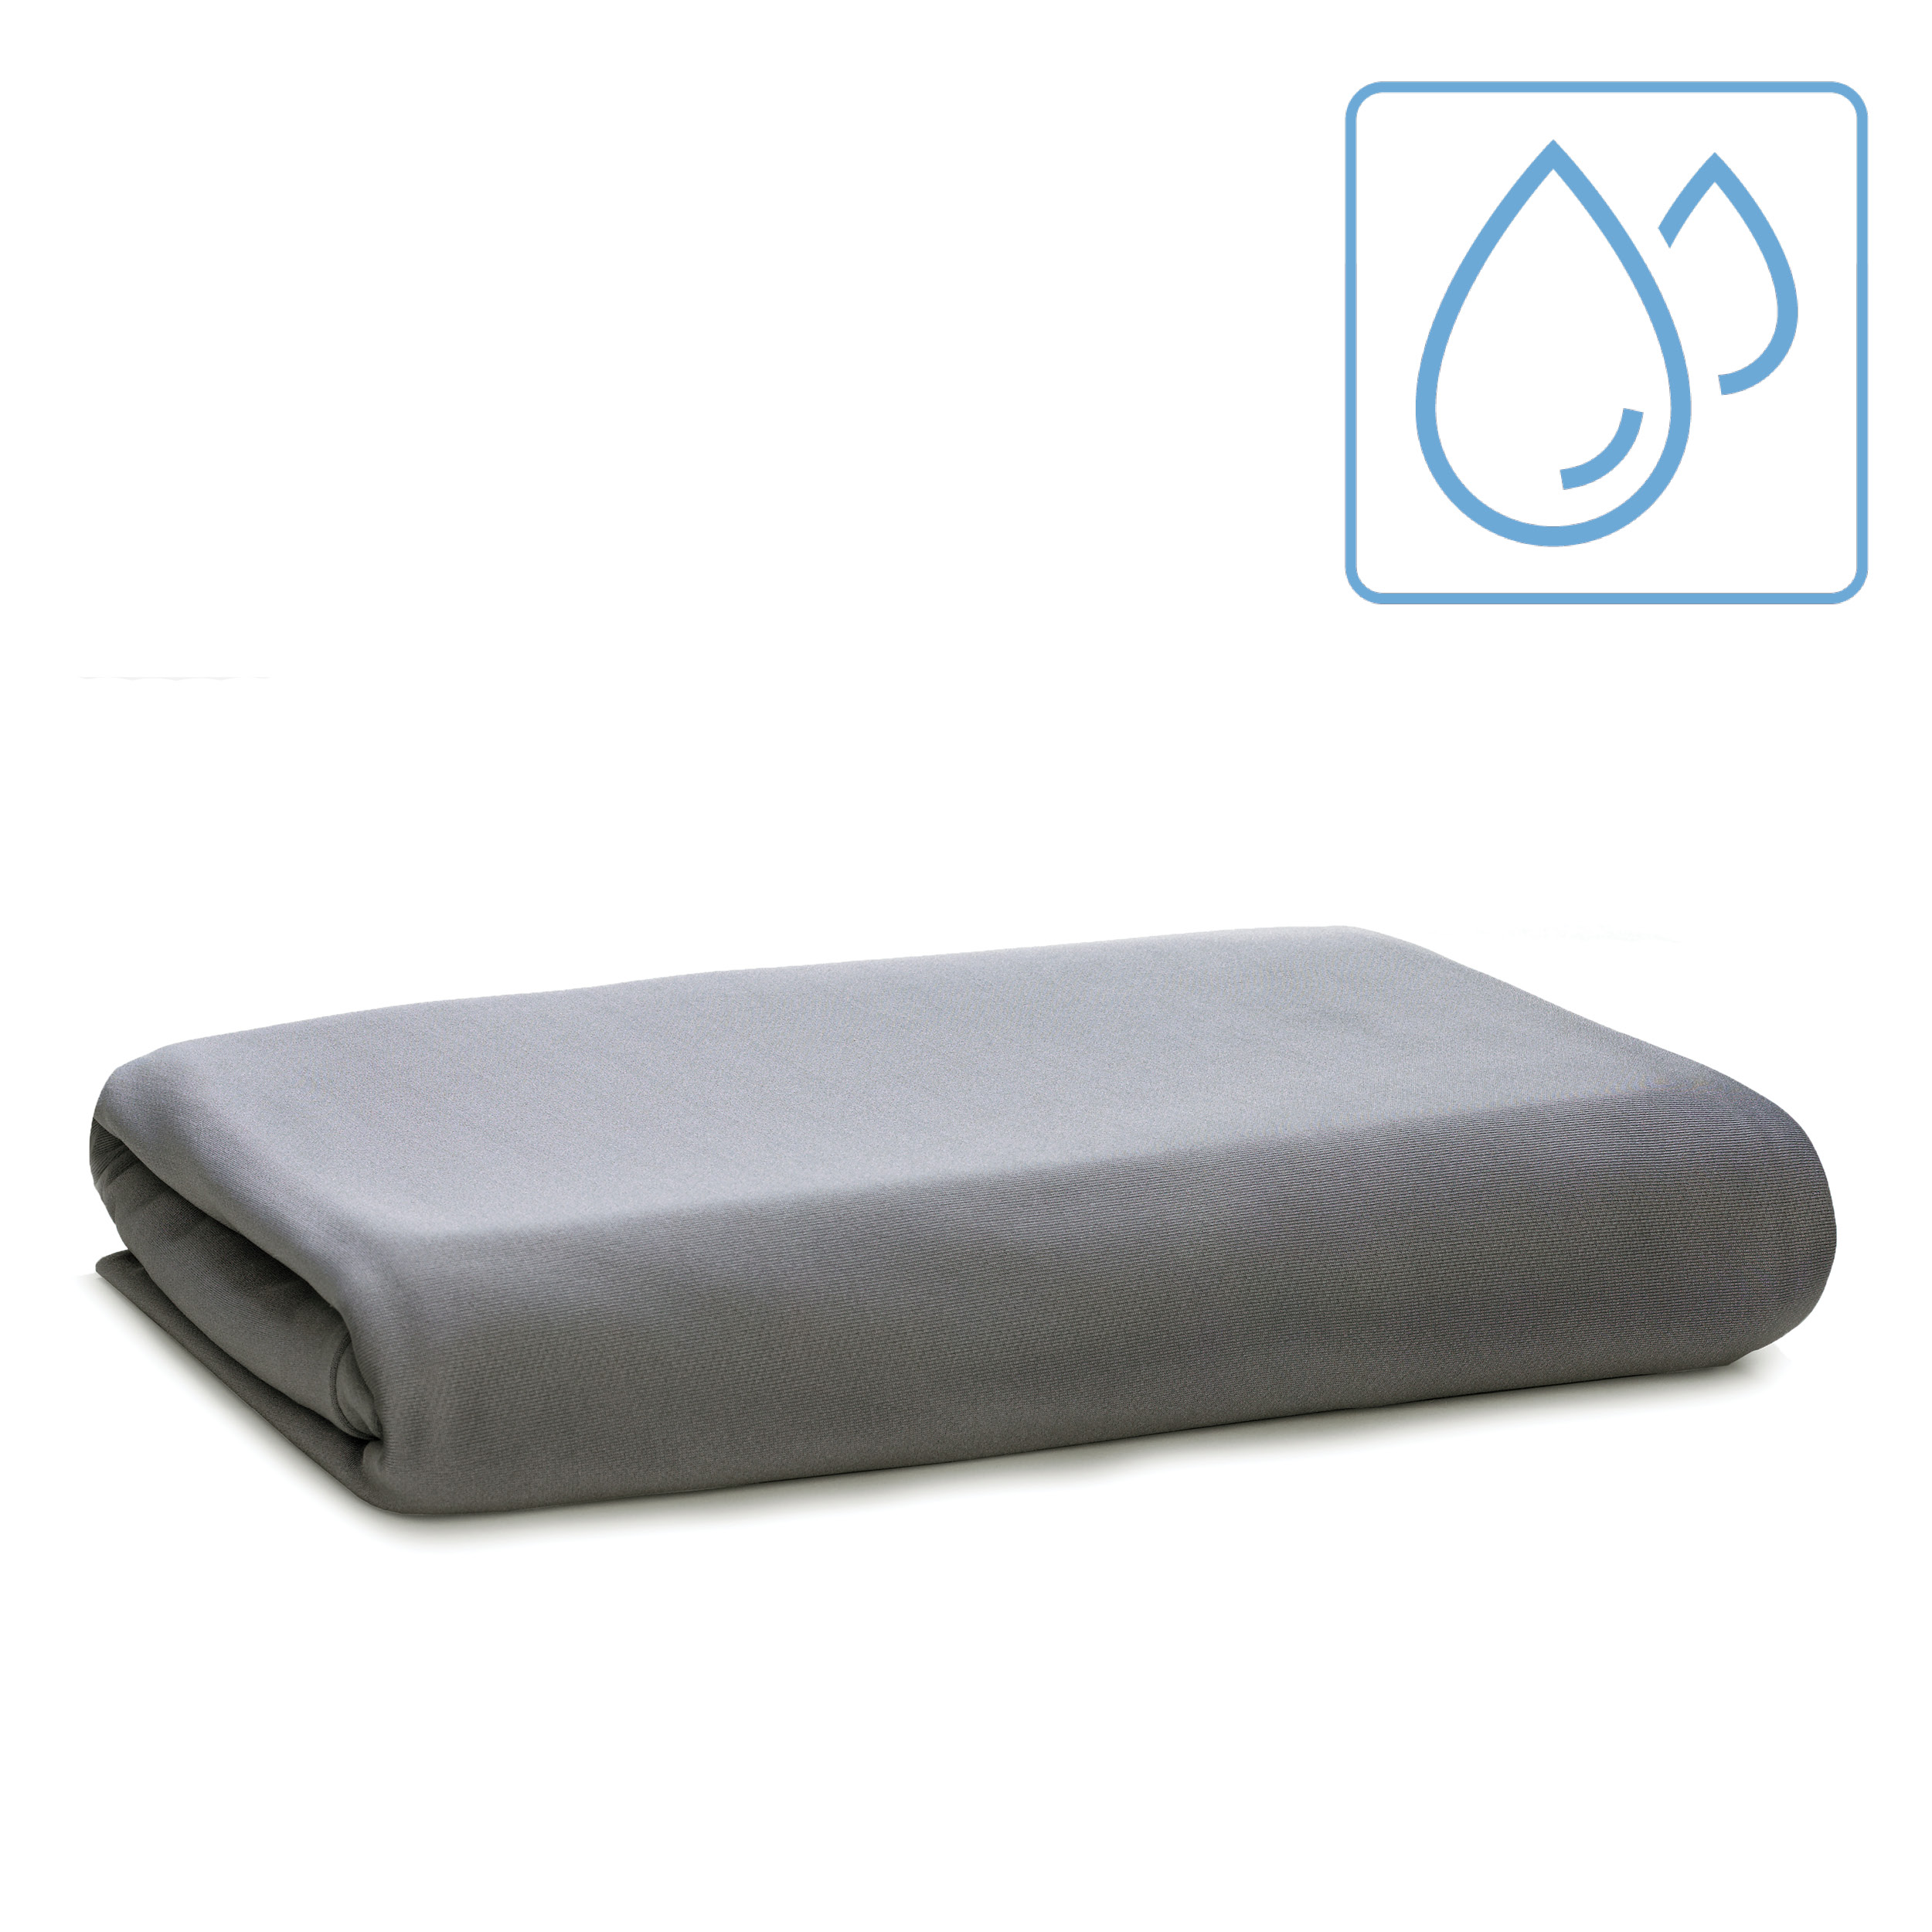 Original Moisture Wicking Fitted Sheet Wicked Sheets